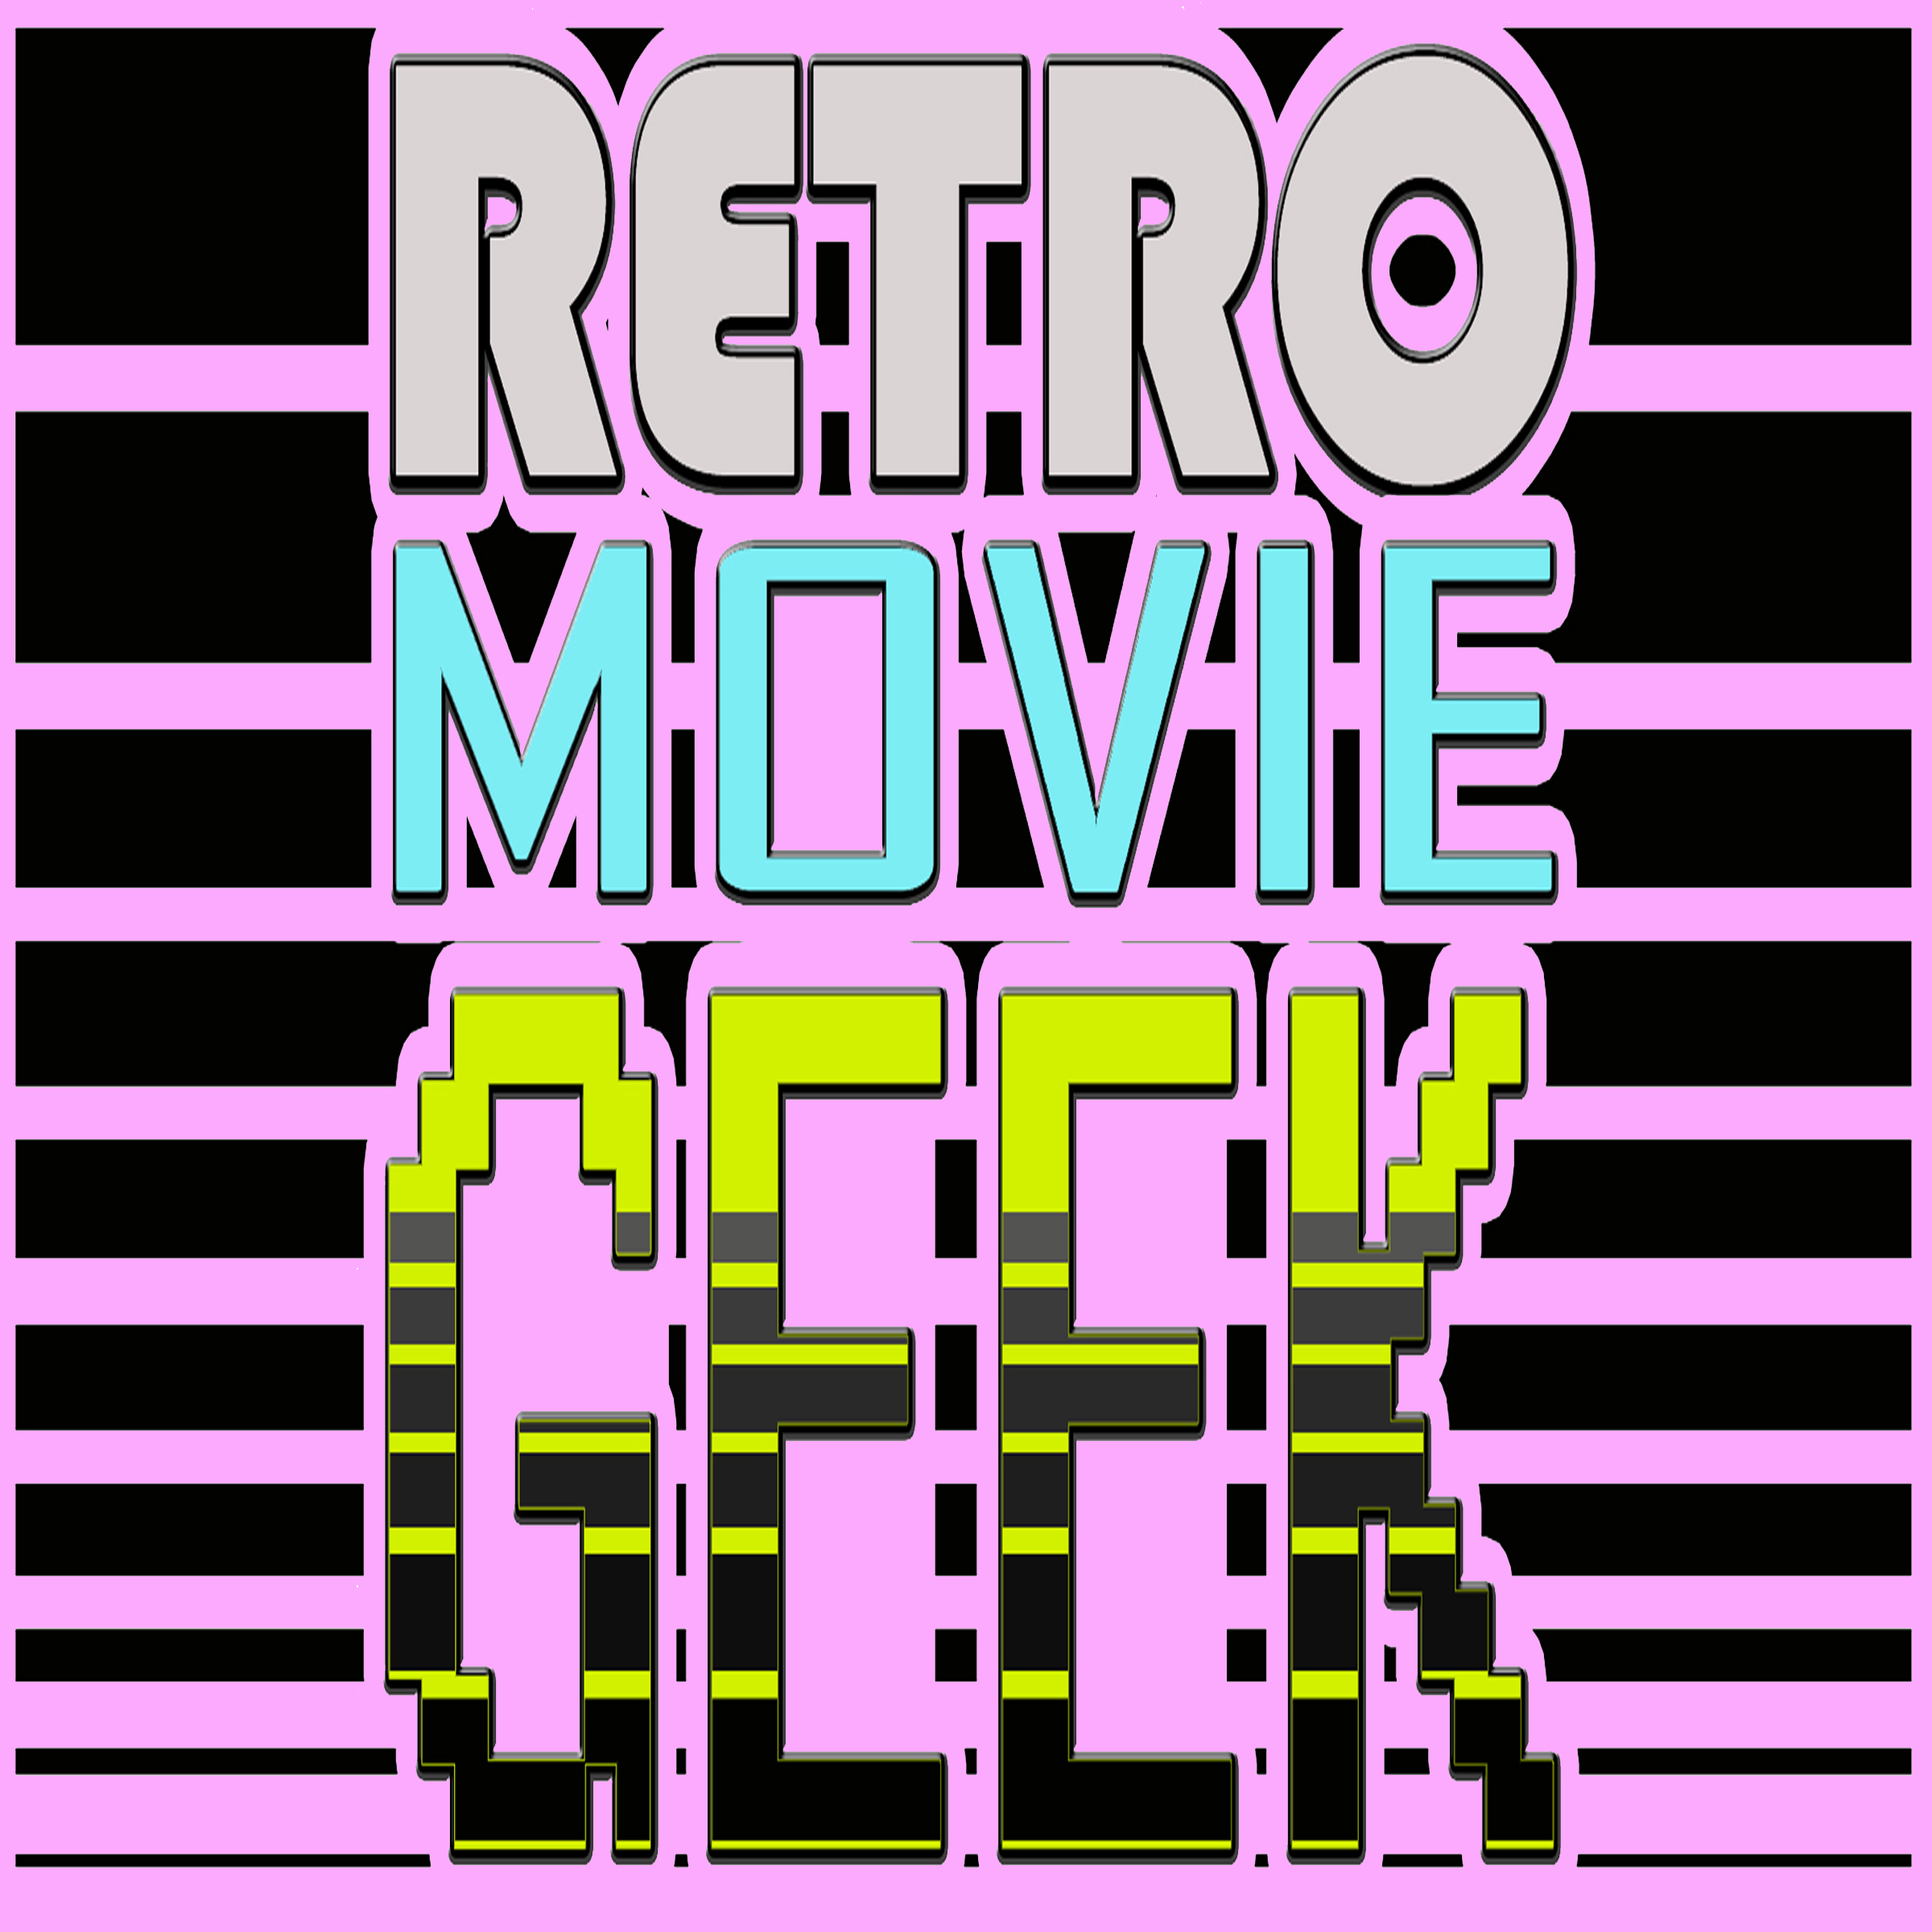 Retro Movie Geek